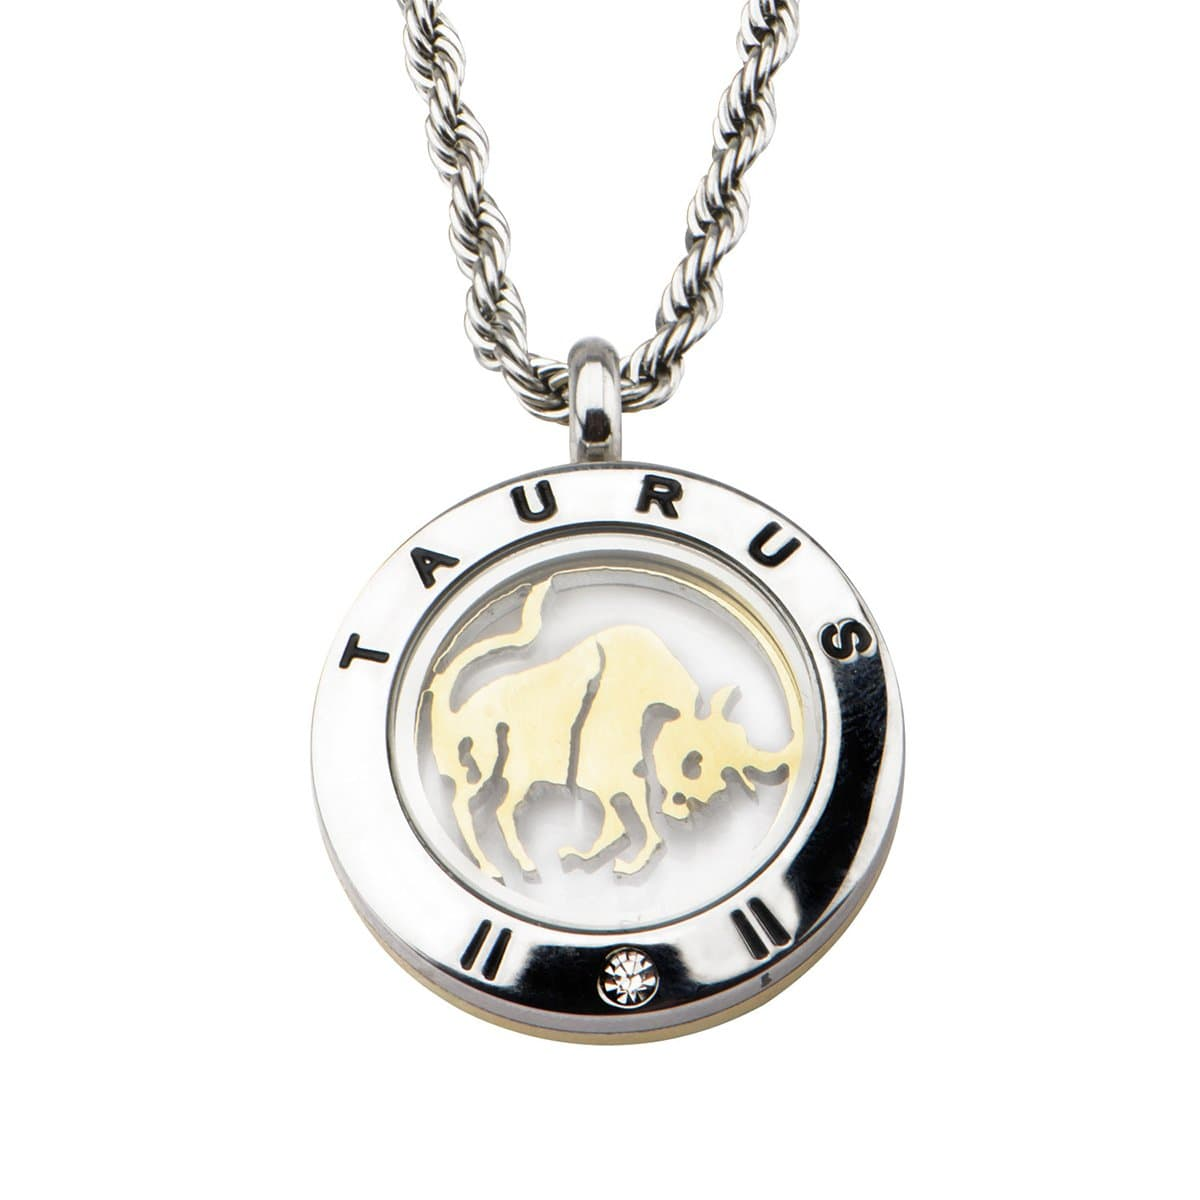 4-in-1 Dual Tone Stainless Steel Mix & Match Taurus Pendant & Chain Pendants